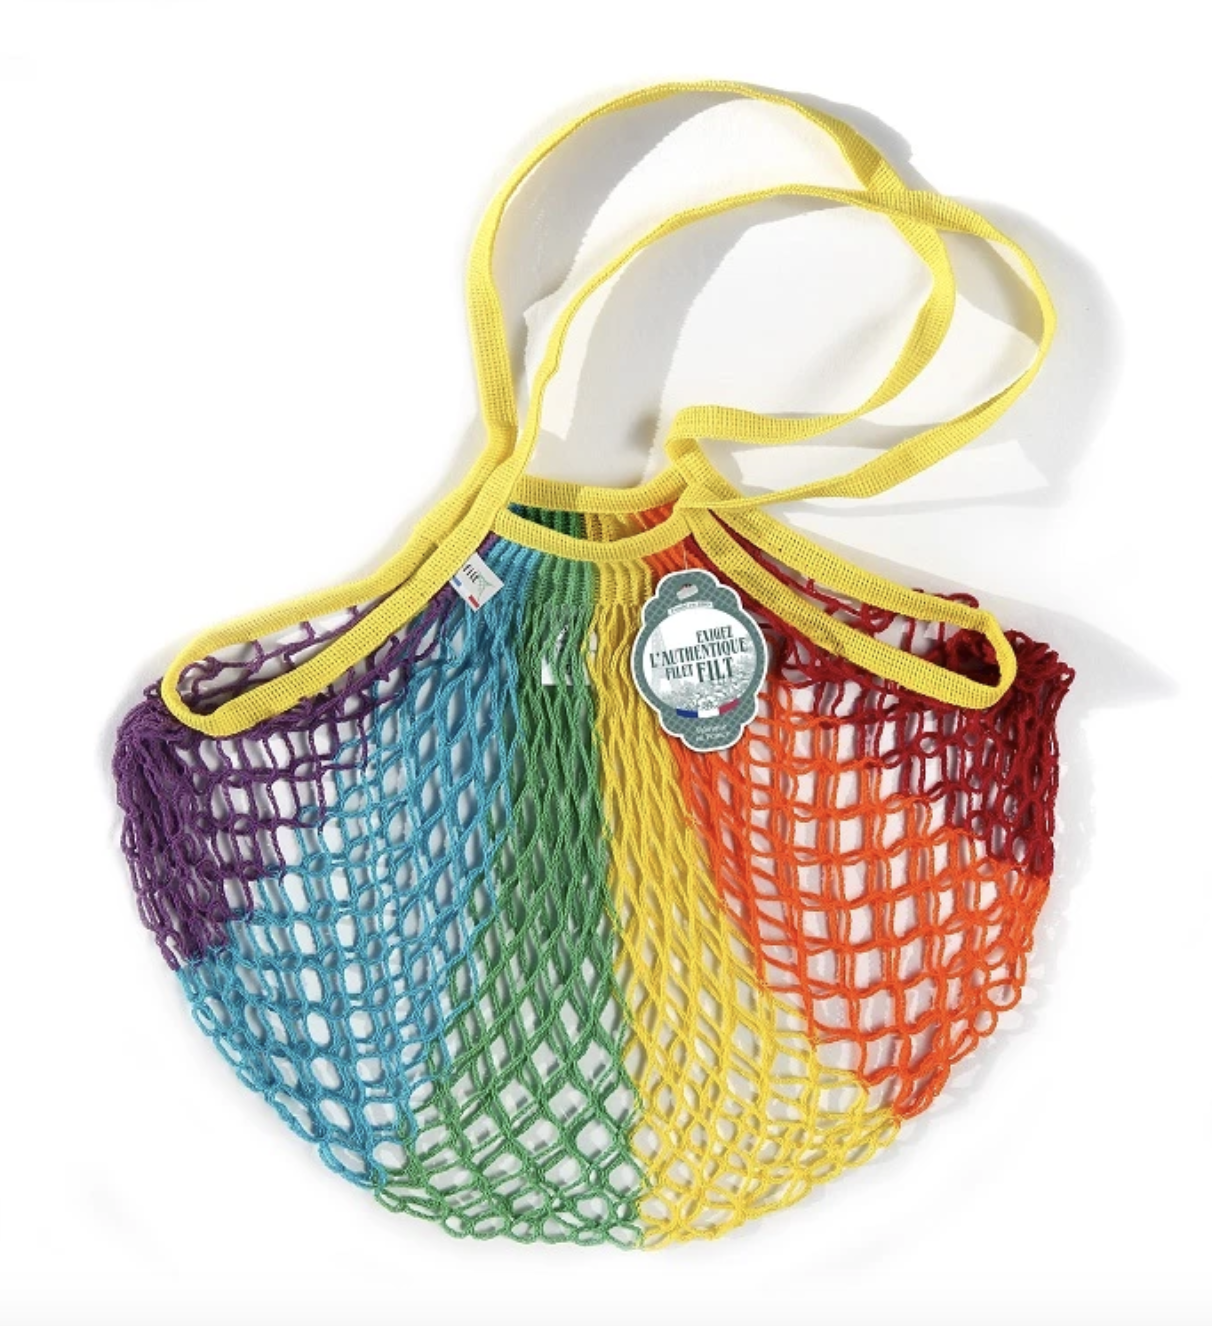 The rainbow net tote bag